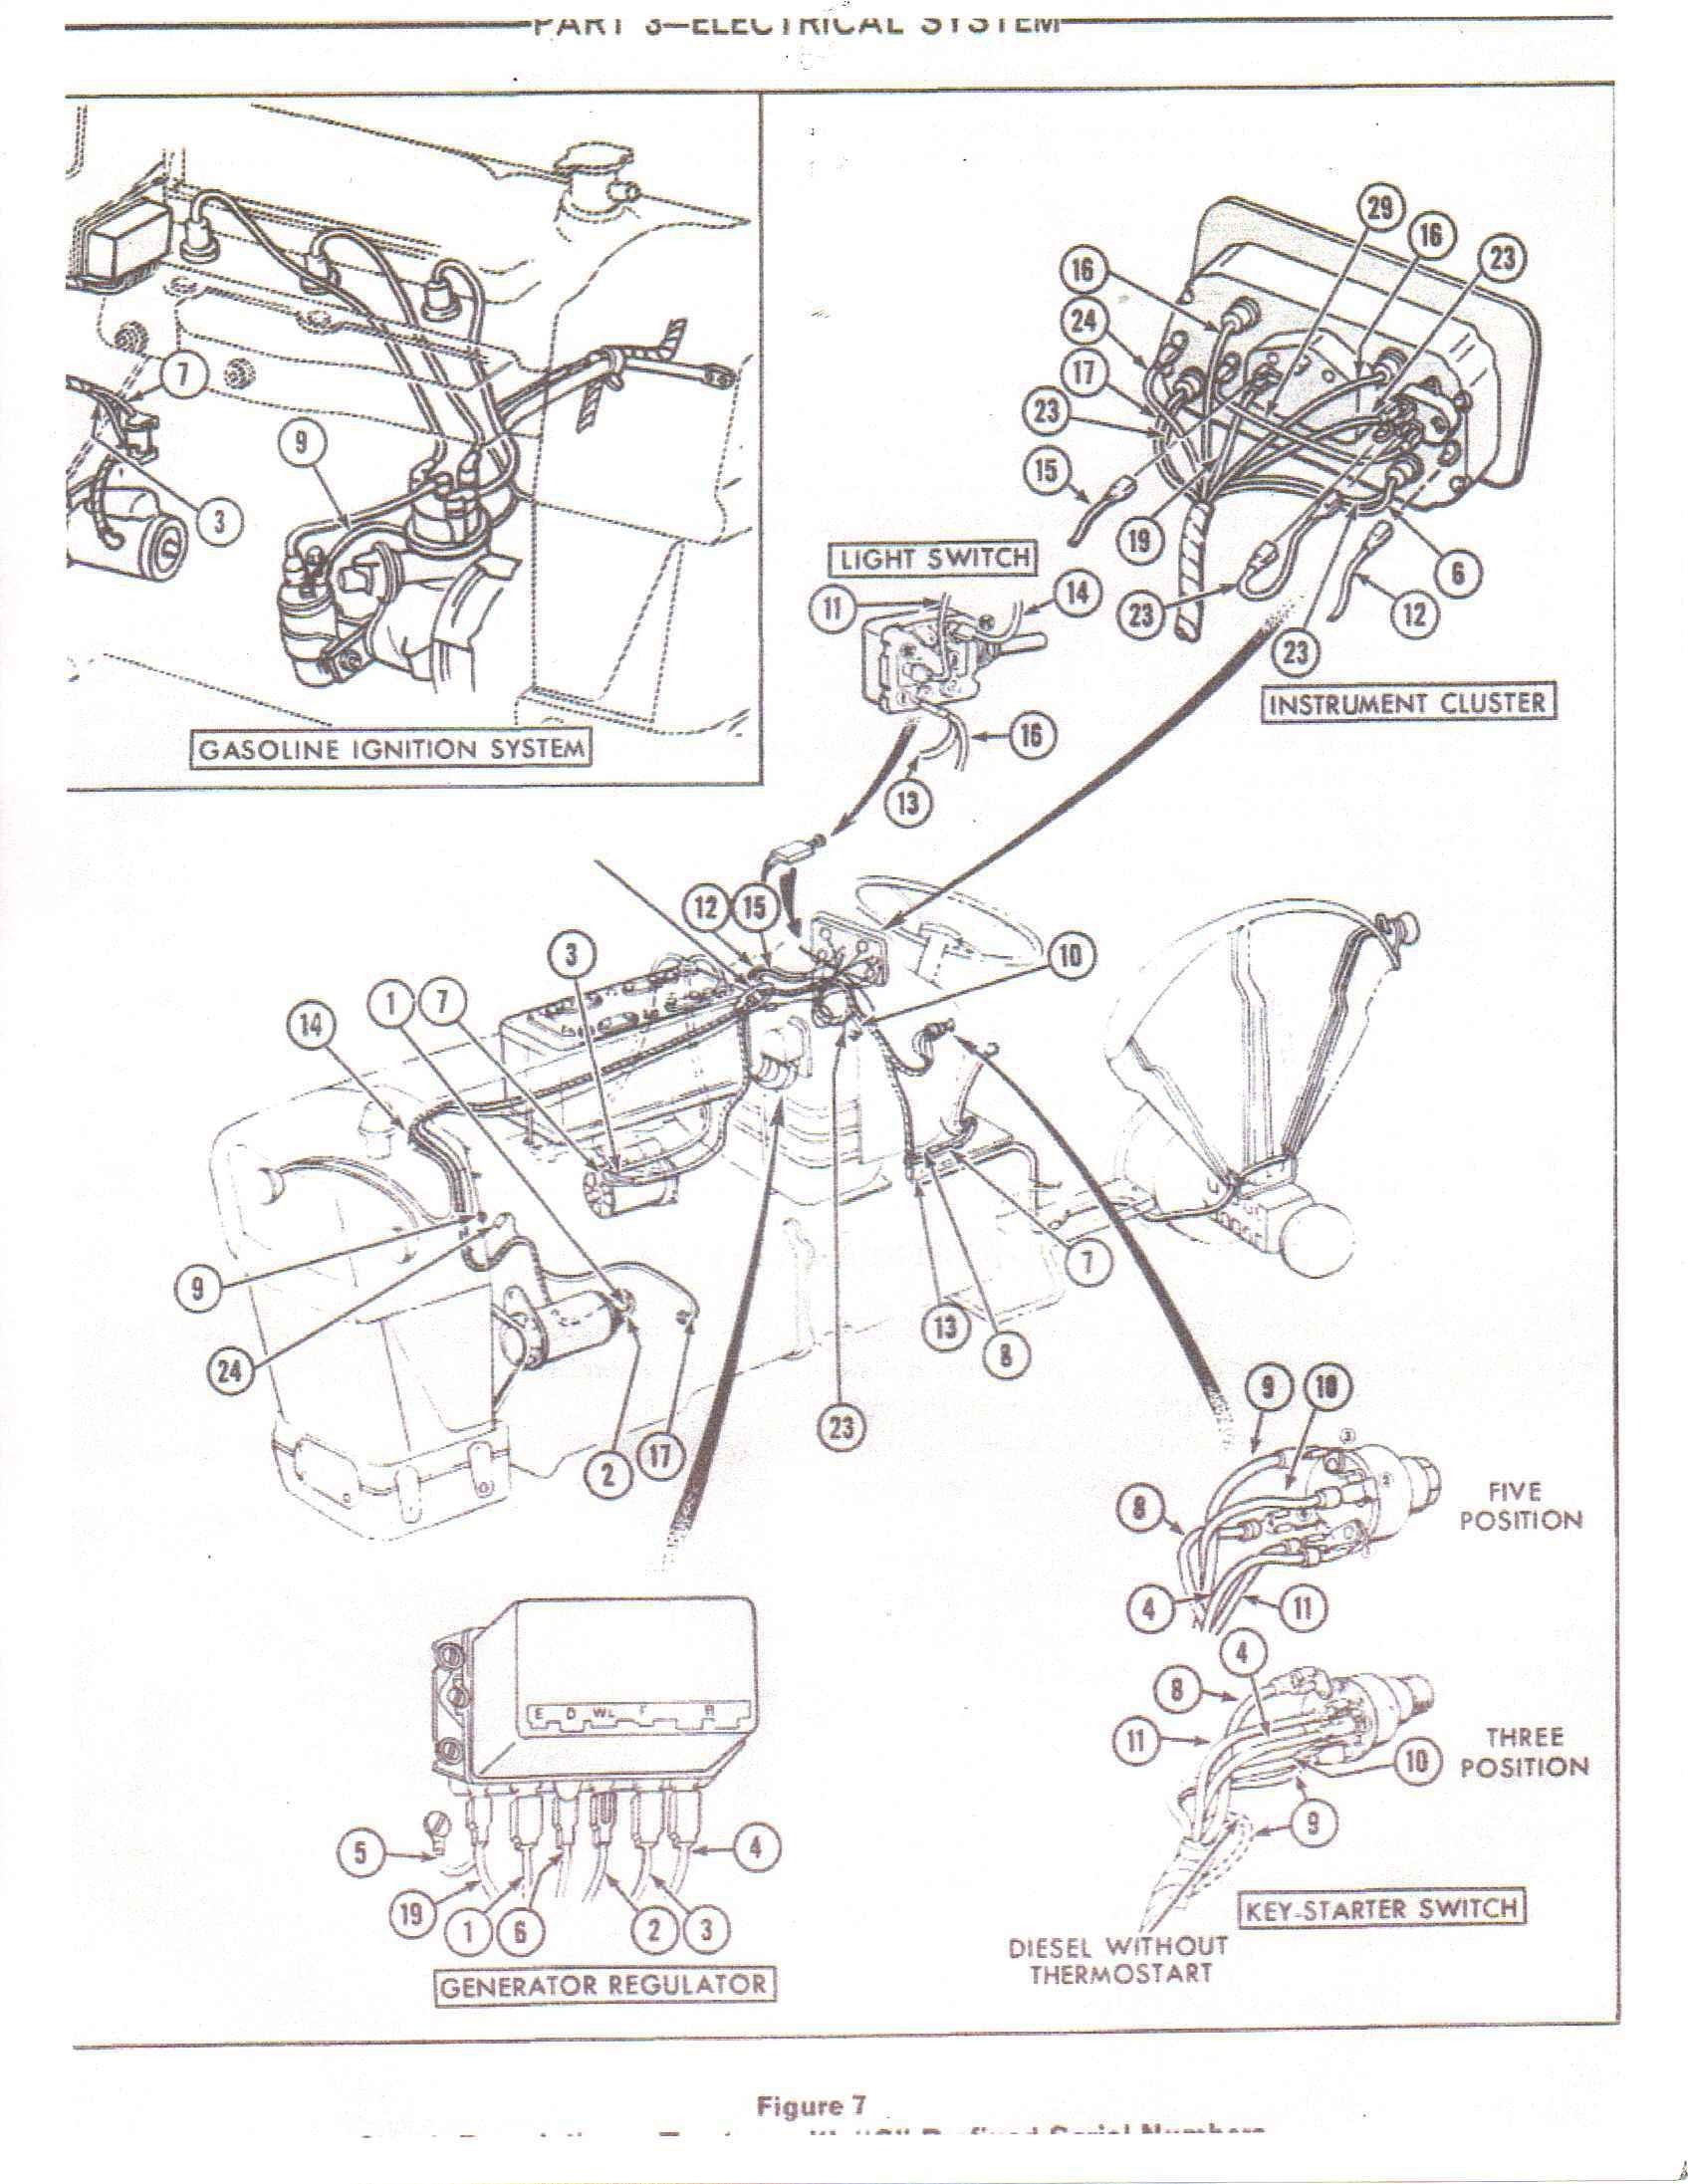 3910 Ford Tractor Wiring Diagram | Wiring Diagram Ebook New Holland Ford Tractor Wiring Diagram on new holland ls180 service manual, new holland tractor engine, new holland tv145, new holland tractor battery, new holland tractor ford, new holland belt diagram, new holland tractor oil filter, new holland tractors used, new holland tractor wheels, new holland tractor circuit breaker, new holland tractor ecu, new holland schematics, new holland tractor remote control, new holland tractor specifications, new holland tractor headlights, new holland tractor 7740, new holland tractor steering, new holland tractor lights, new holland tractor attachments, new holland ts110 wiring-diagram,